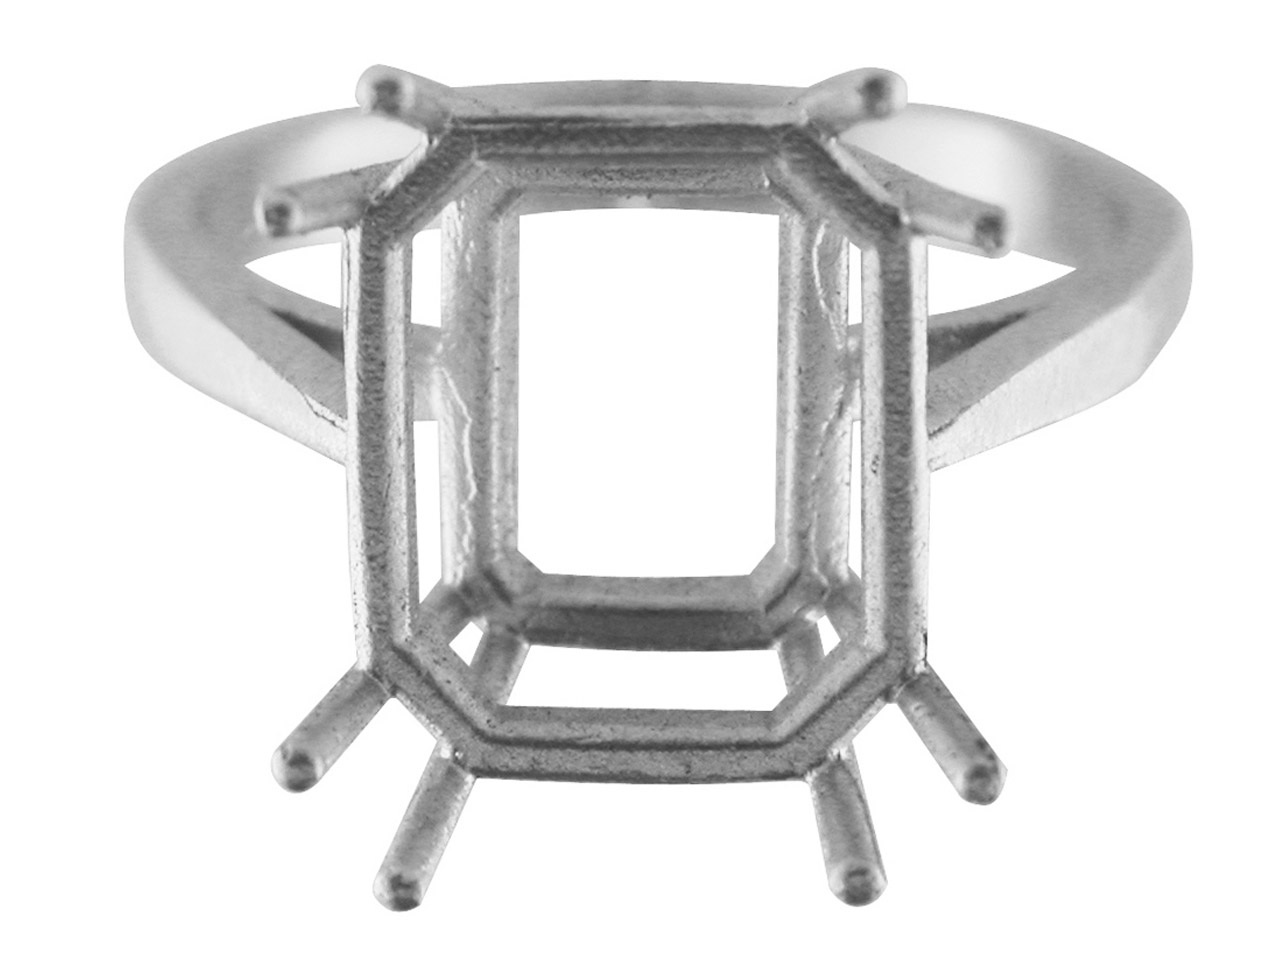 Sterling Silver N7 Dress Octagonal Ring 12x10mm Unhallmarked Size O